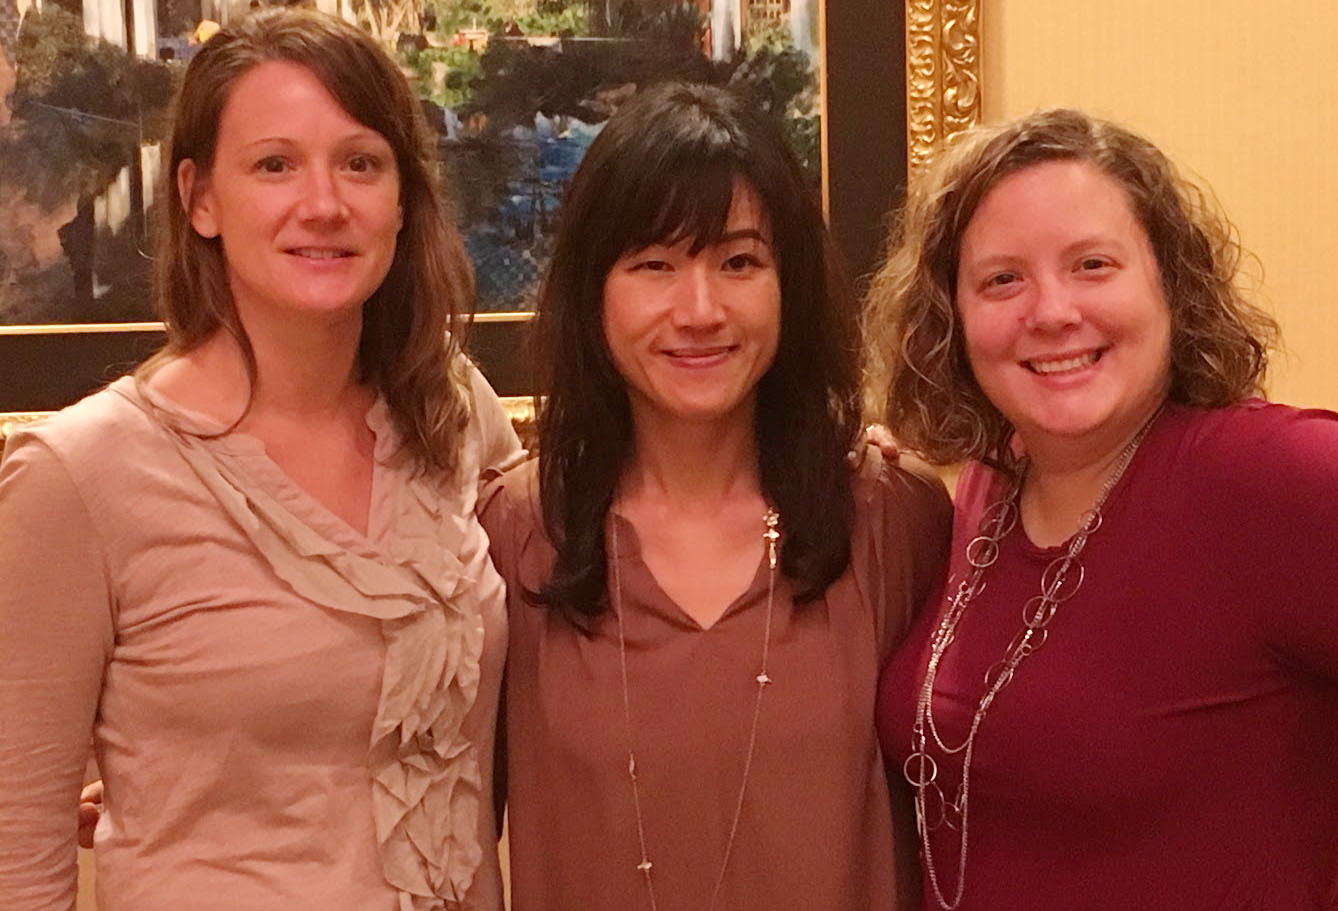 Allie Giro, Yiling Chappelow and Suzanne Edmonds